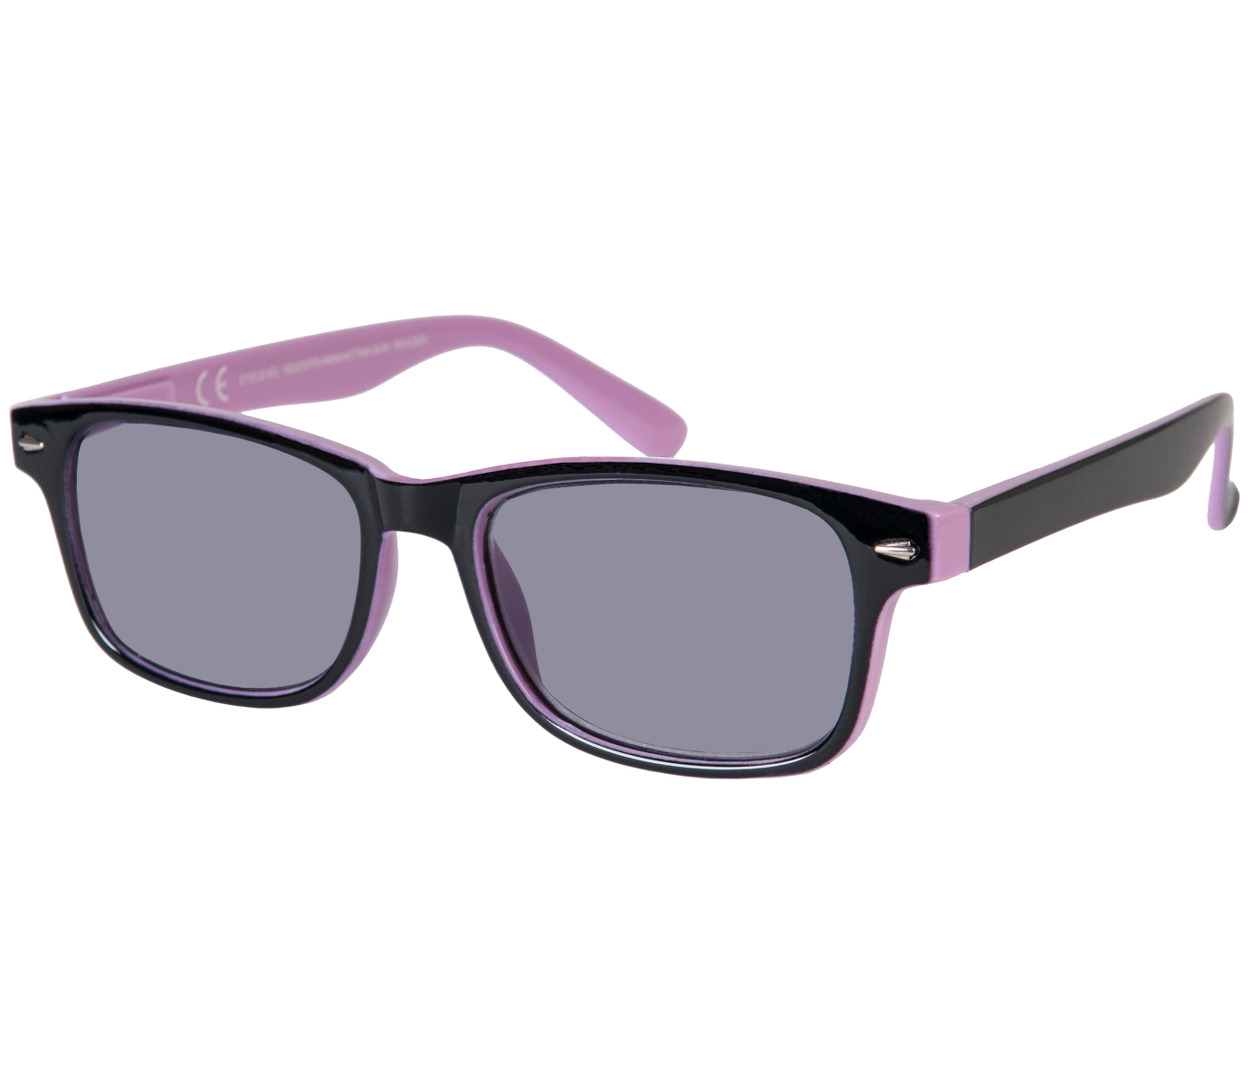 Mirage (Black) Classic Sun Readers